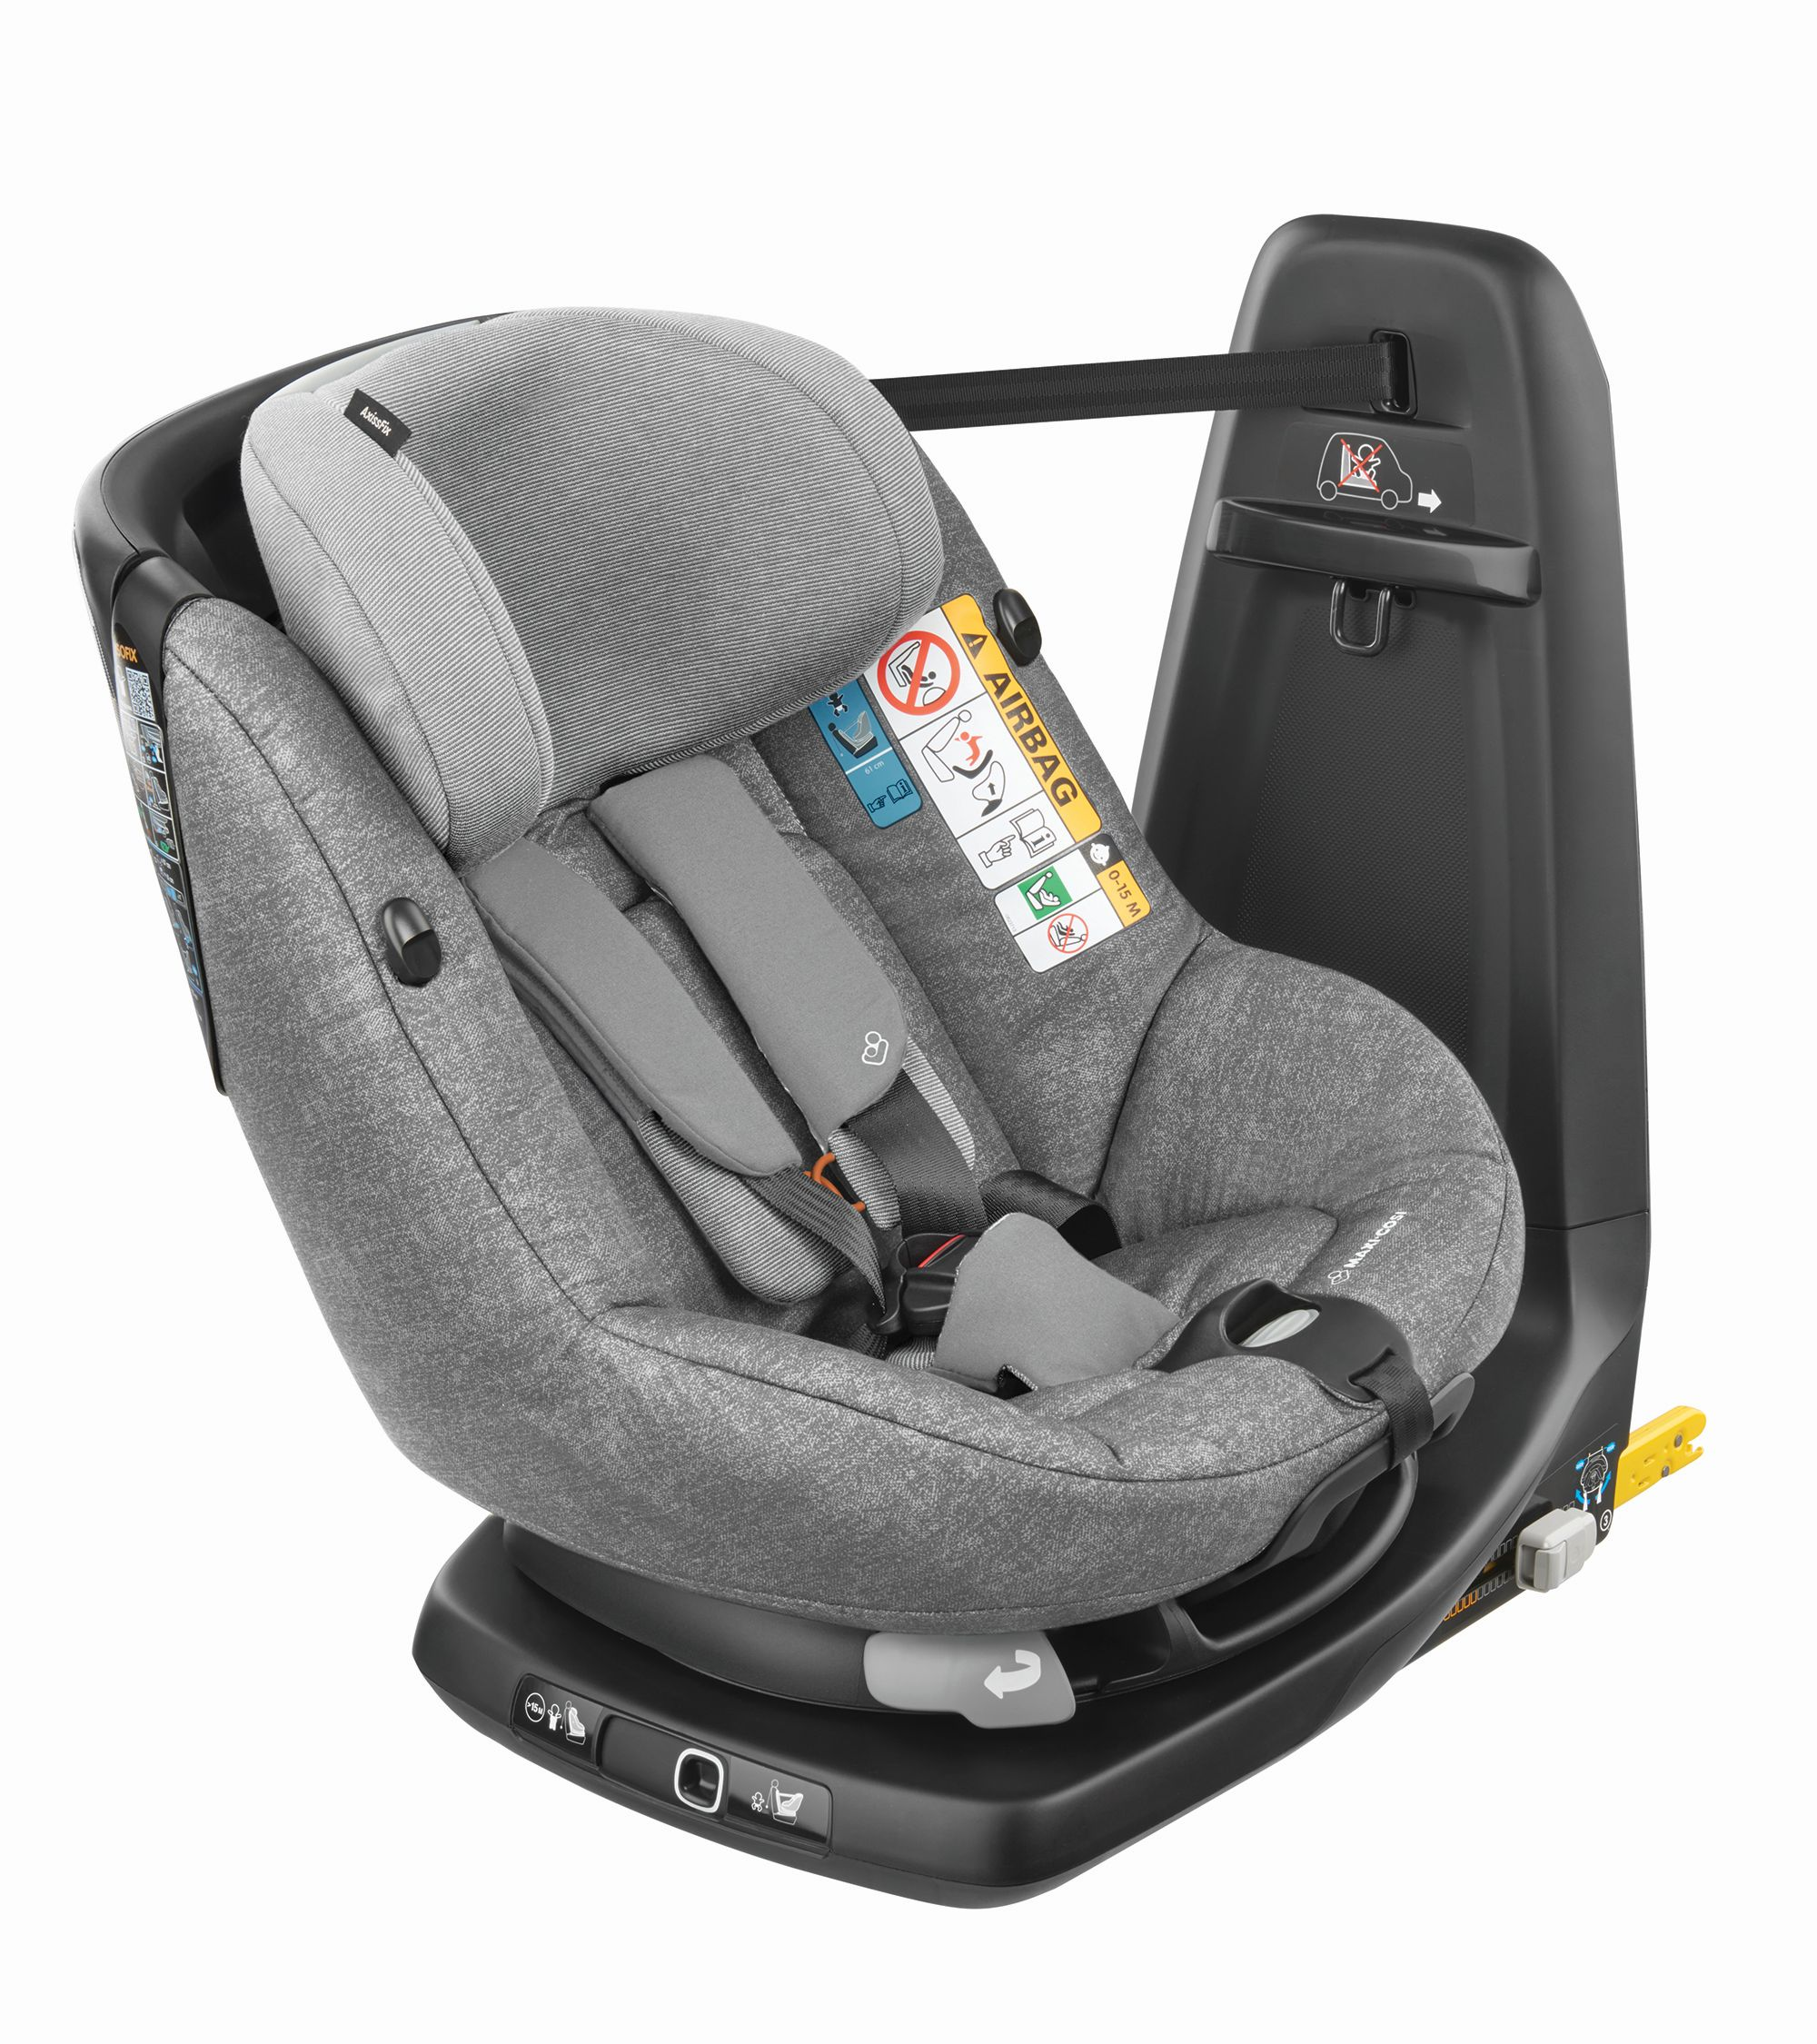 Maxi Cosi Child Car Seat AxissFix I Size Nomad Grey 2019